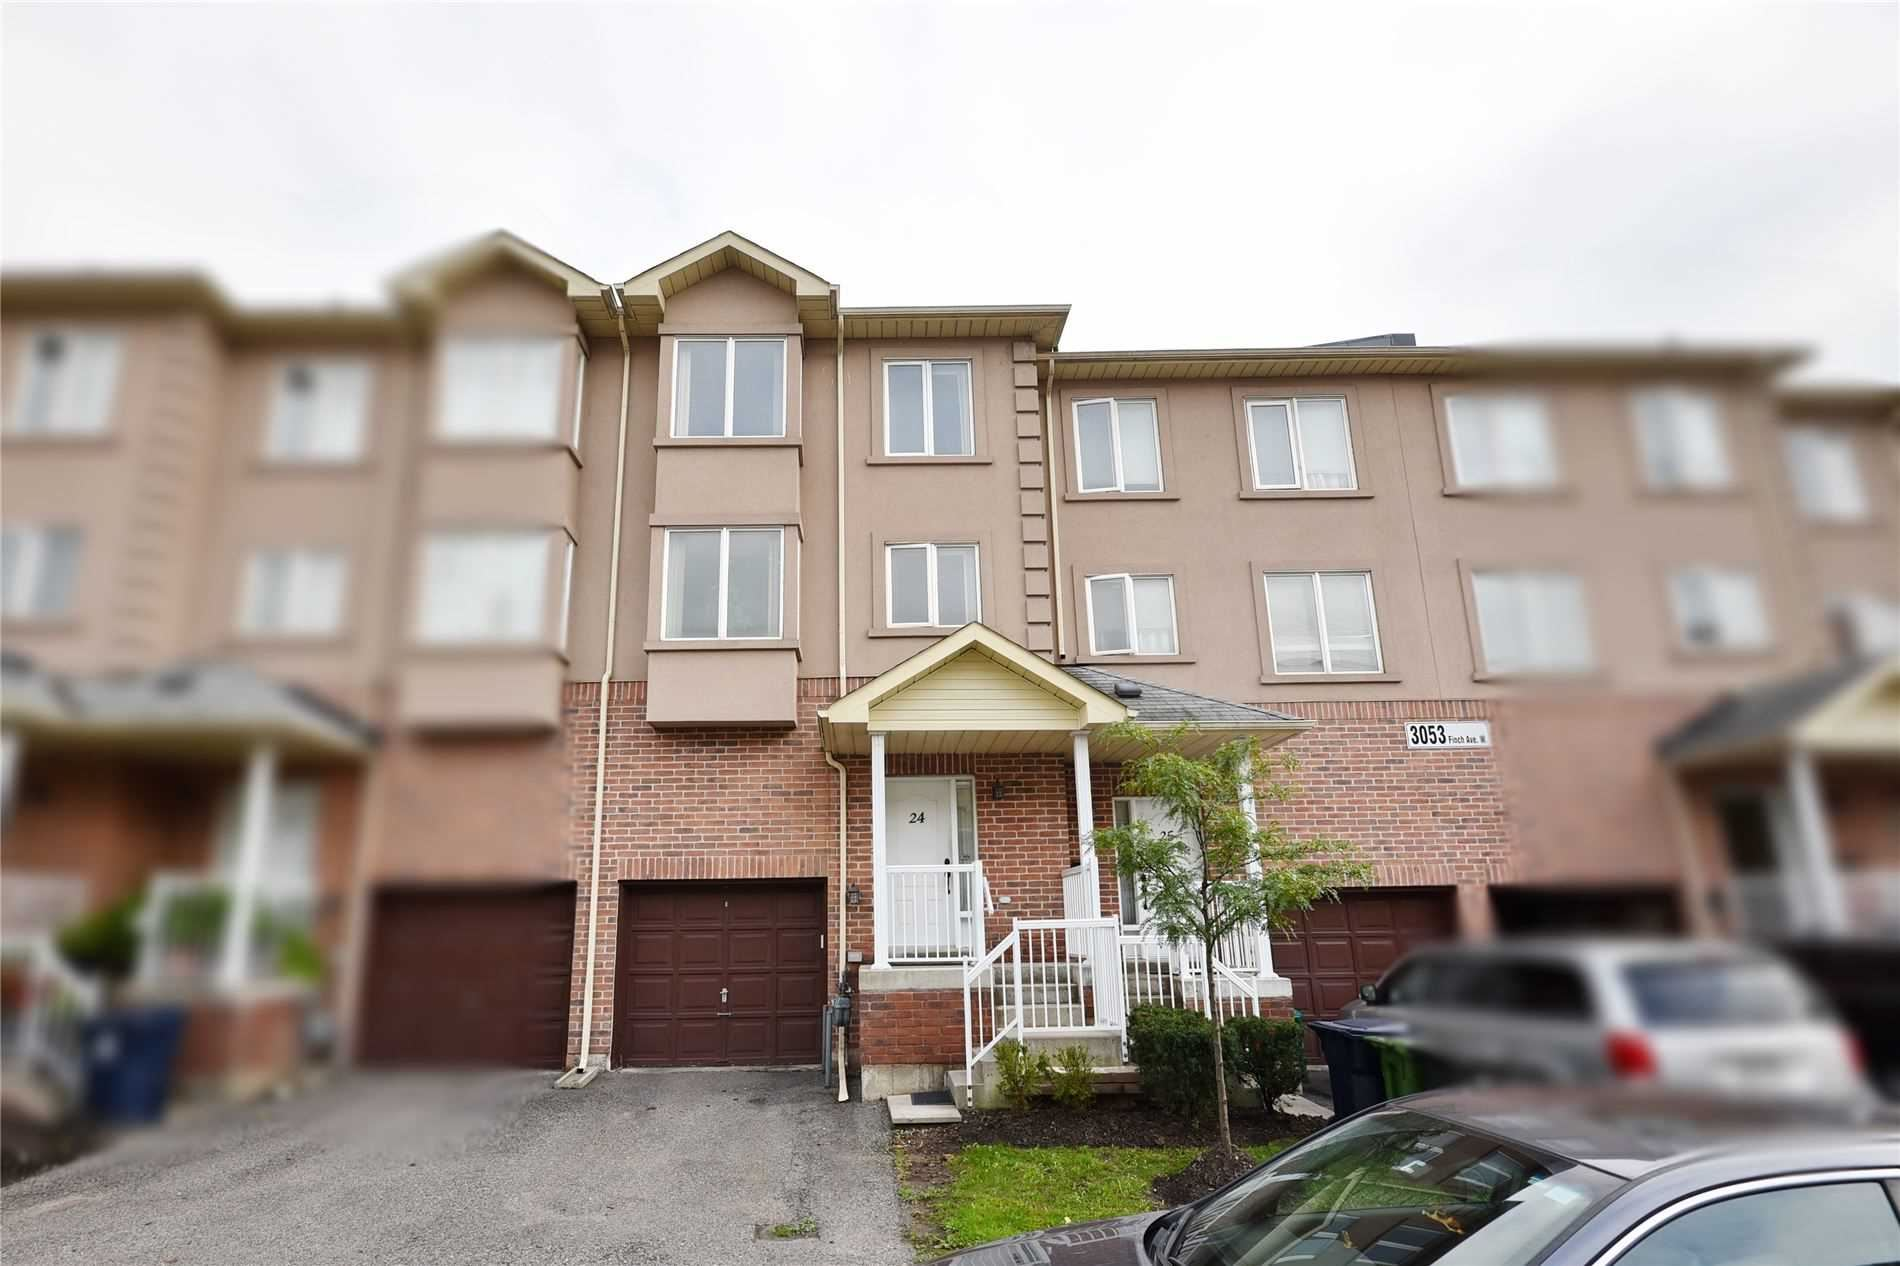 3053 Finch Ave, Toronto, ON M9M 0A6 - MLS#: W5397763